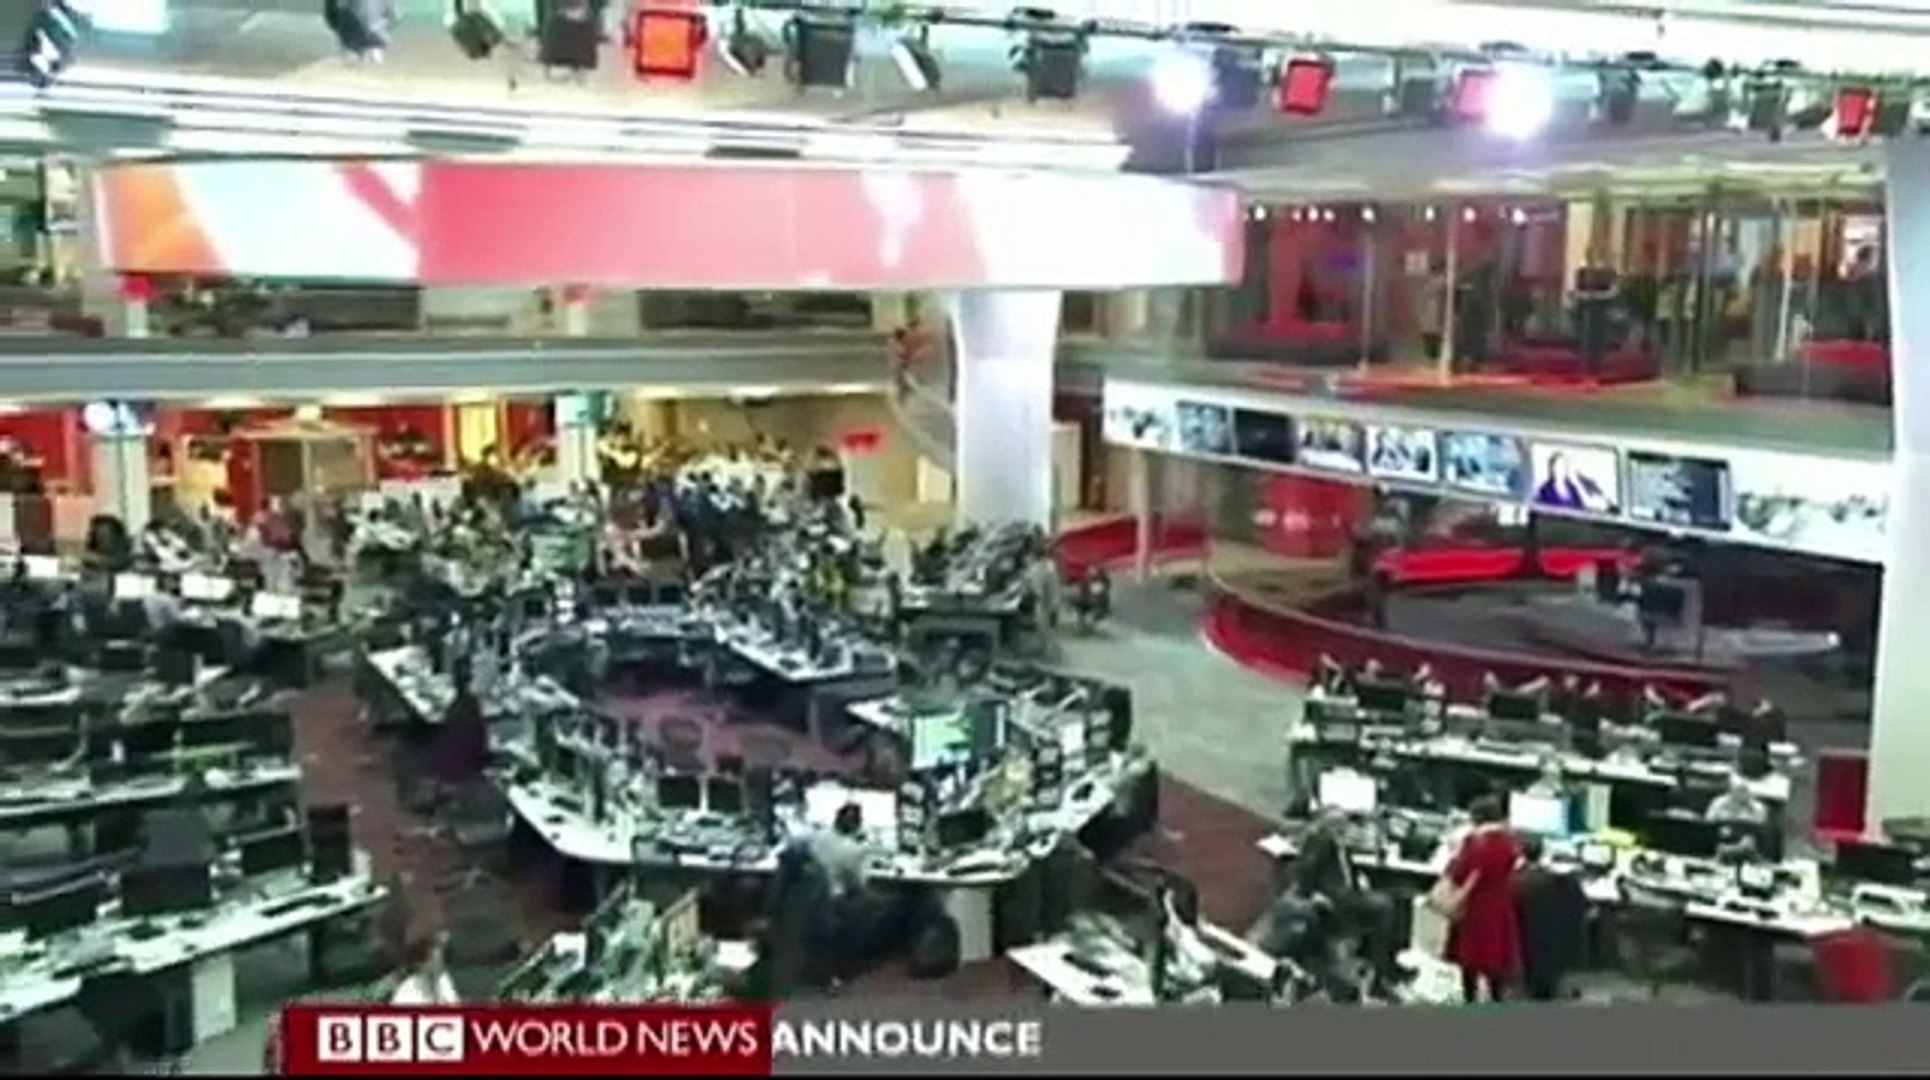 BBC New News Centre Live News Report